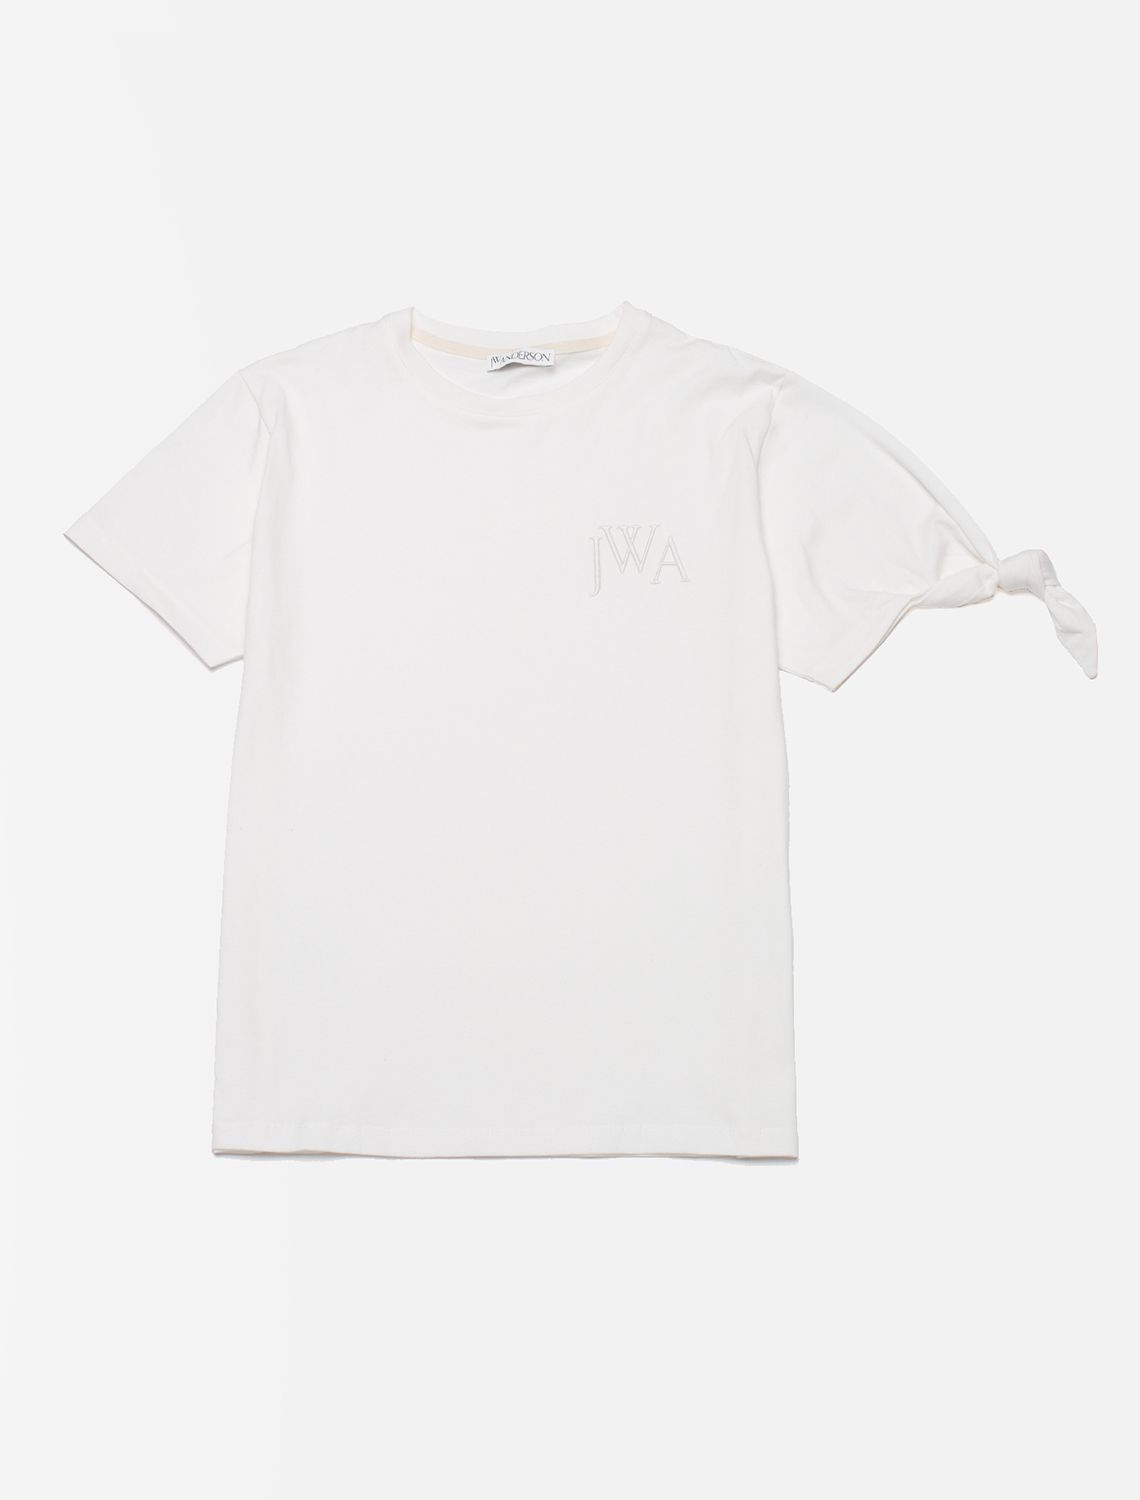 179-je32ms18-726-002-j-w-anderson-jwa-logo-knot-tee-off-white-1